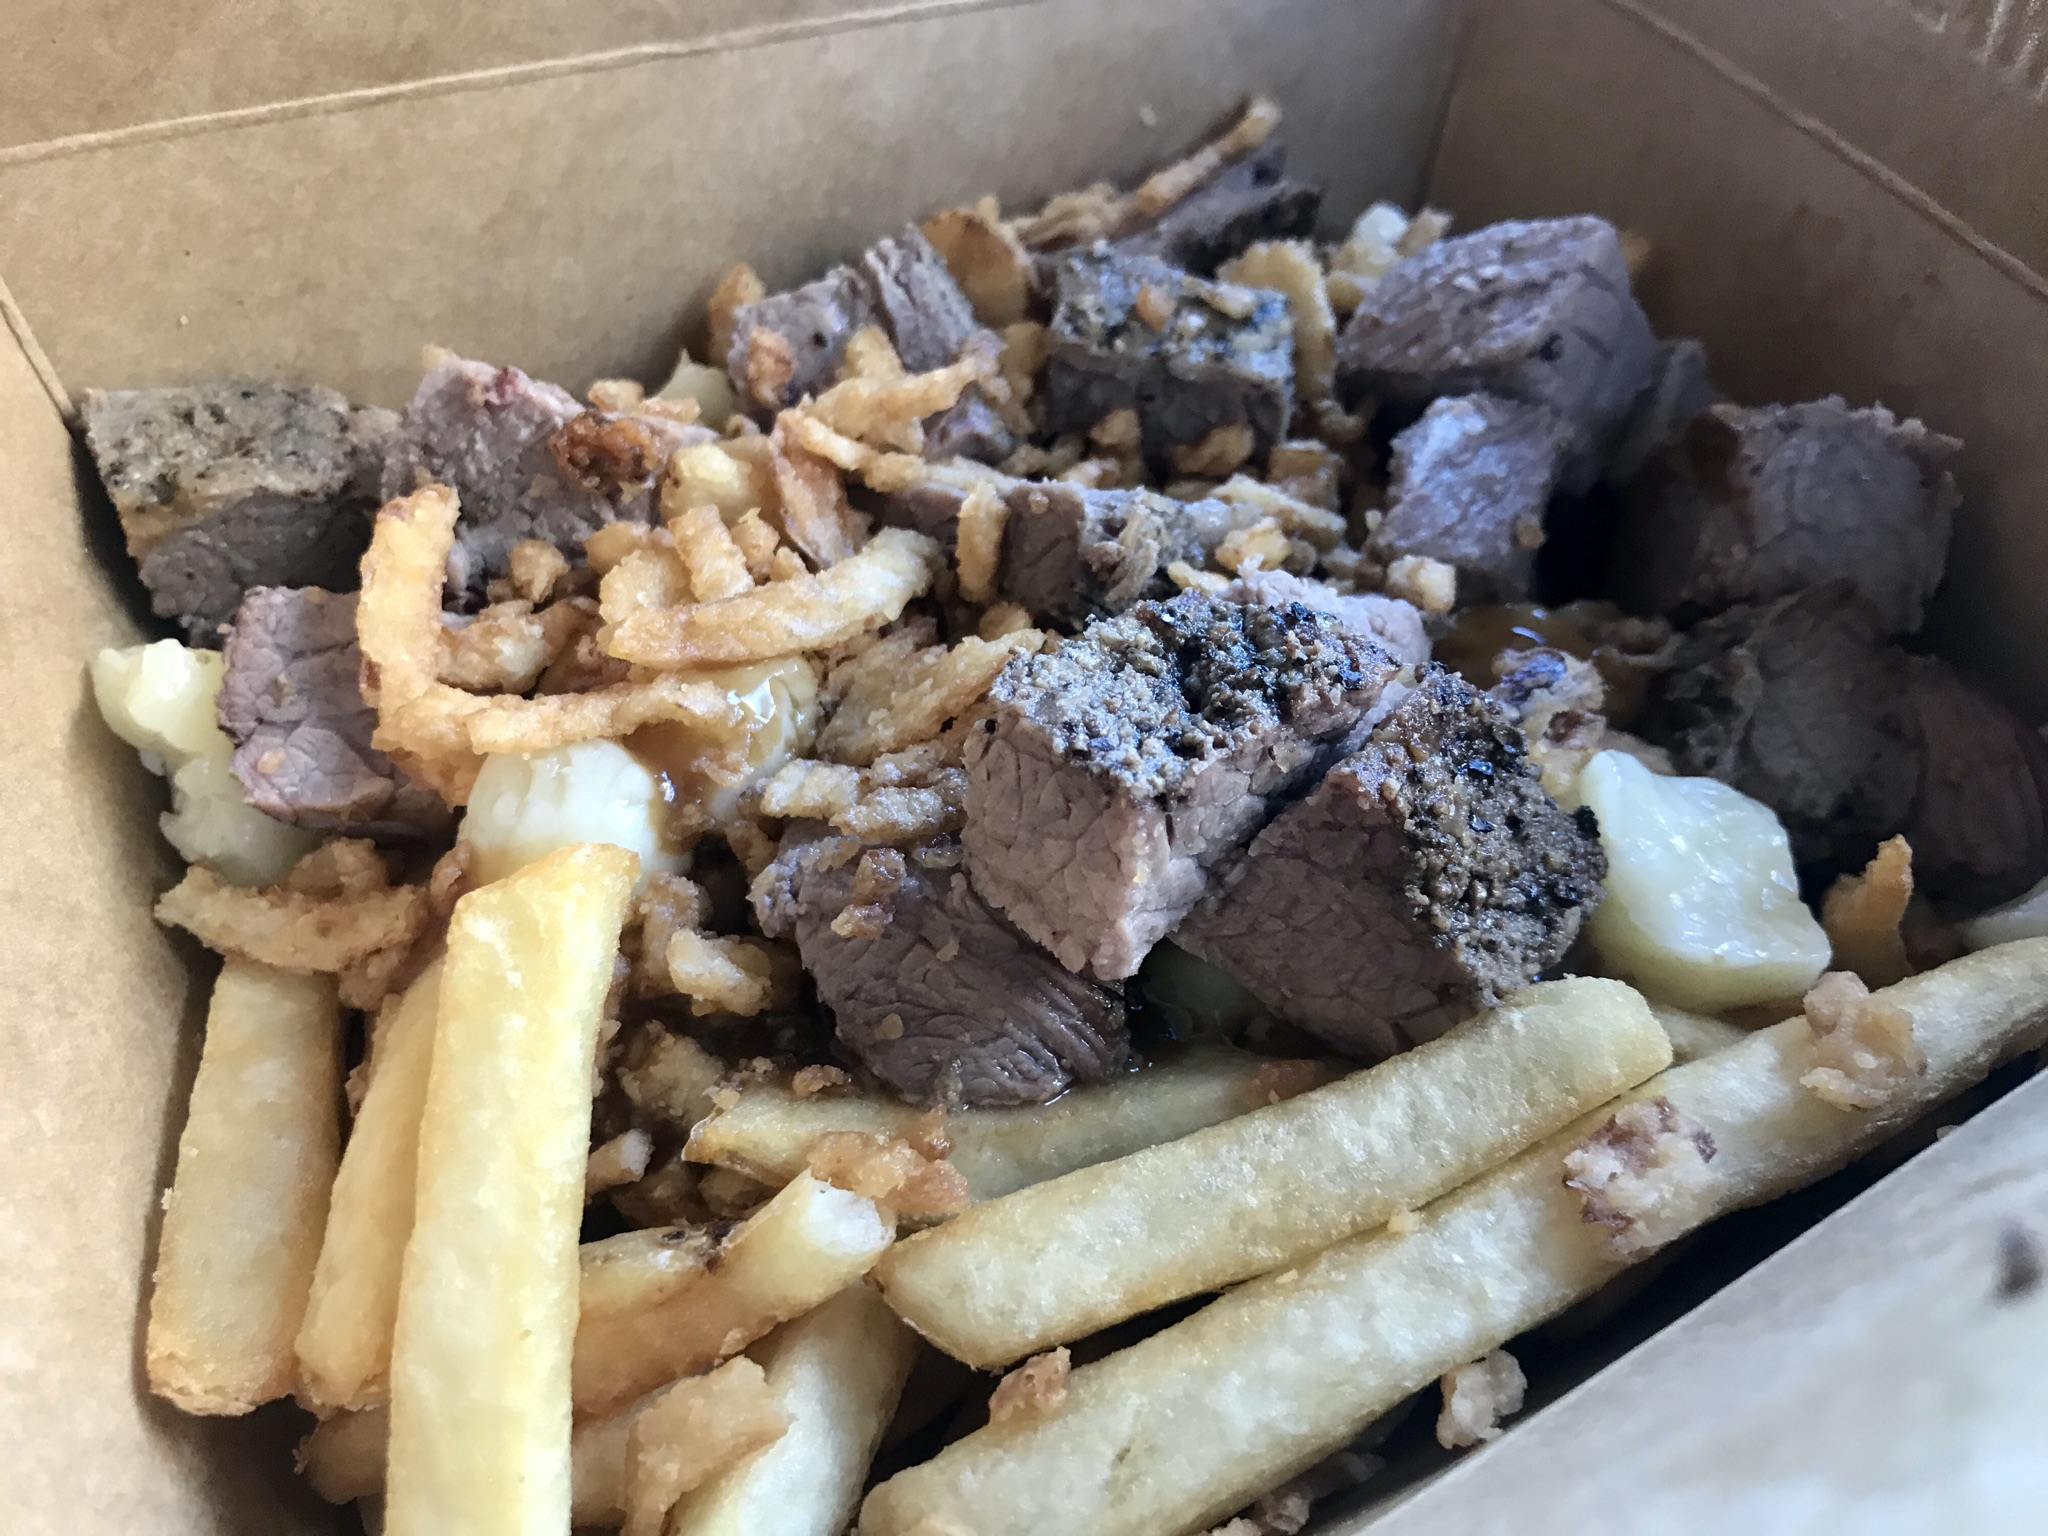 Lunch at Poutine, Eh? In Kennewick – December 1 2020